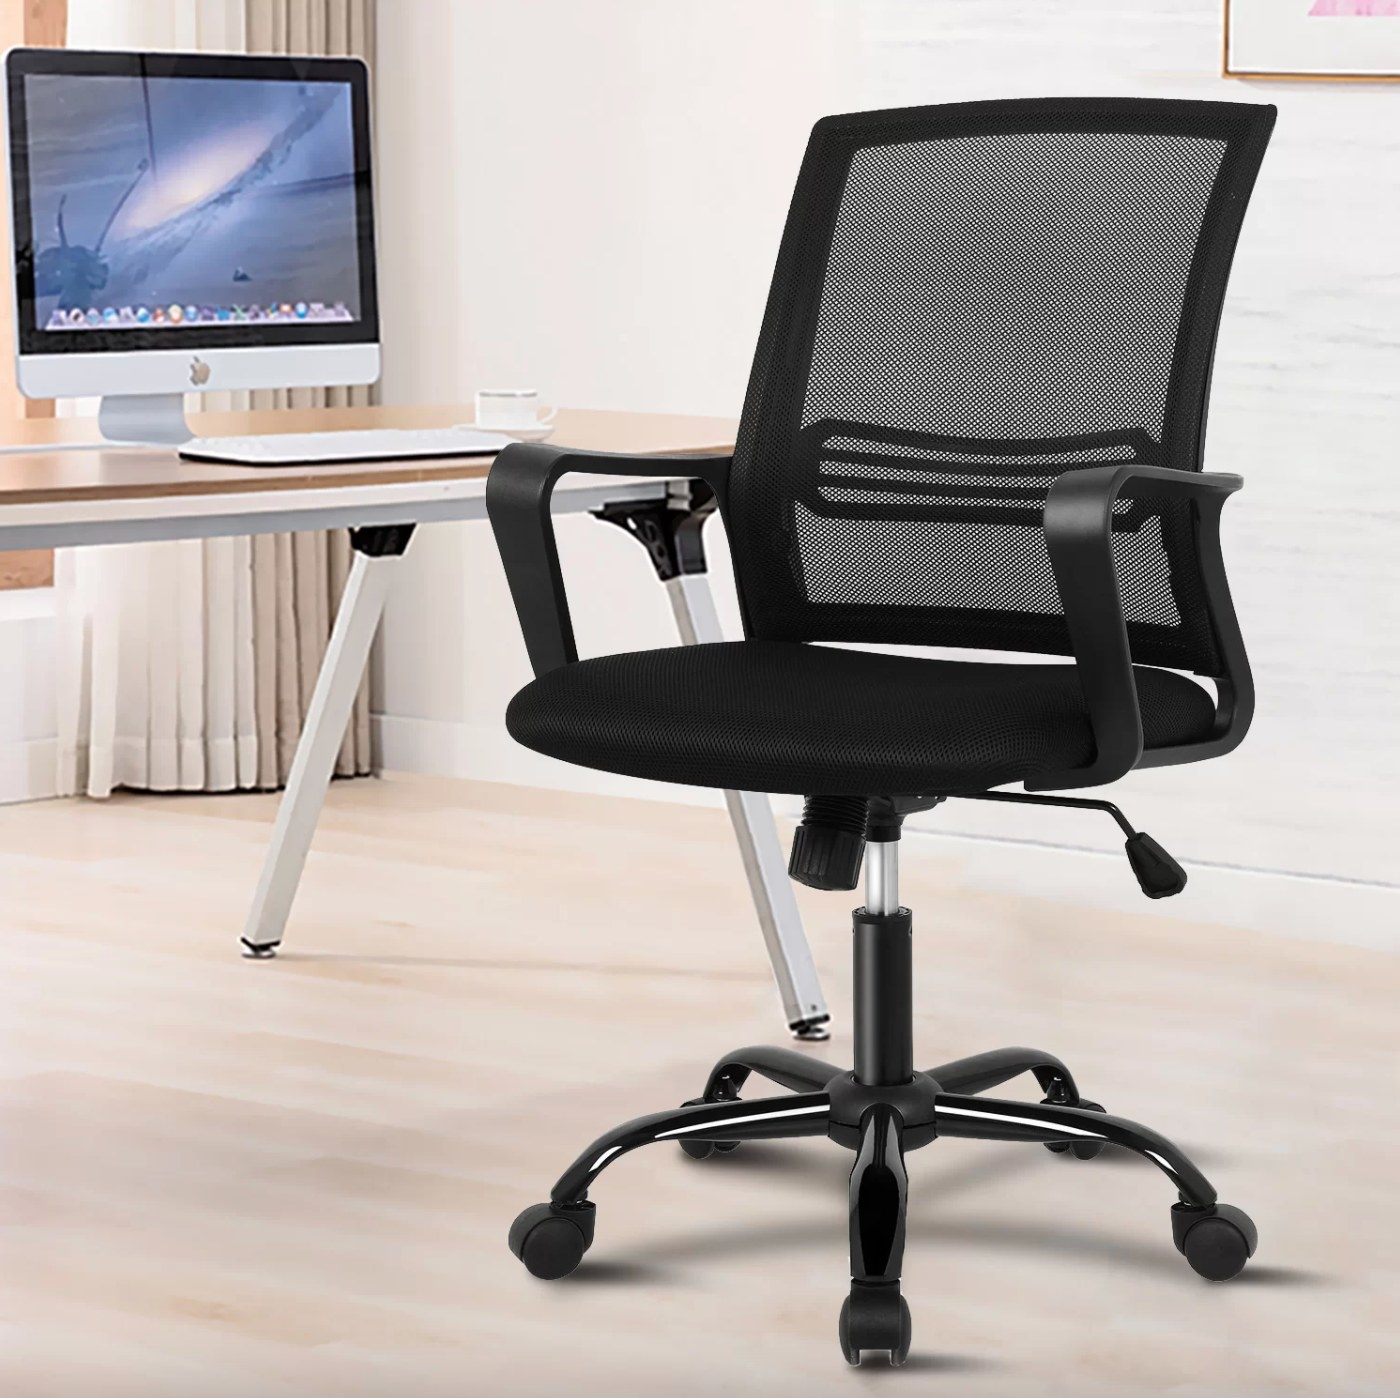 The office chair in black